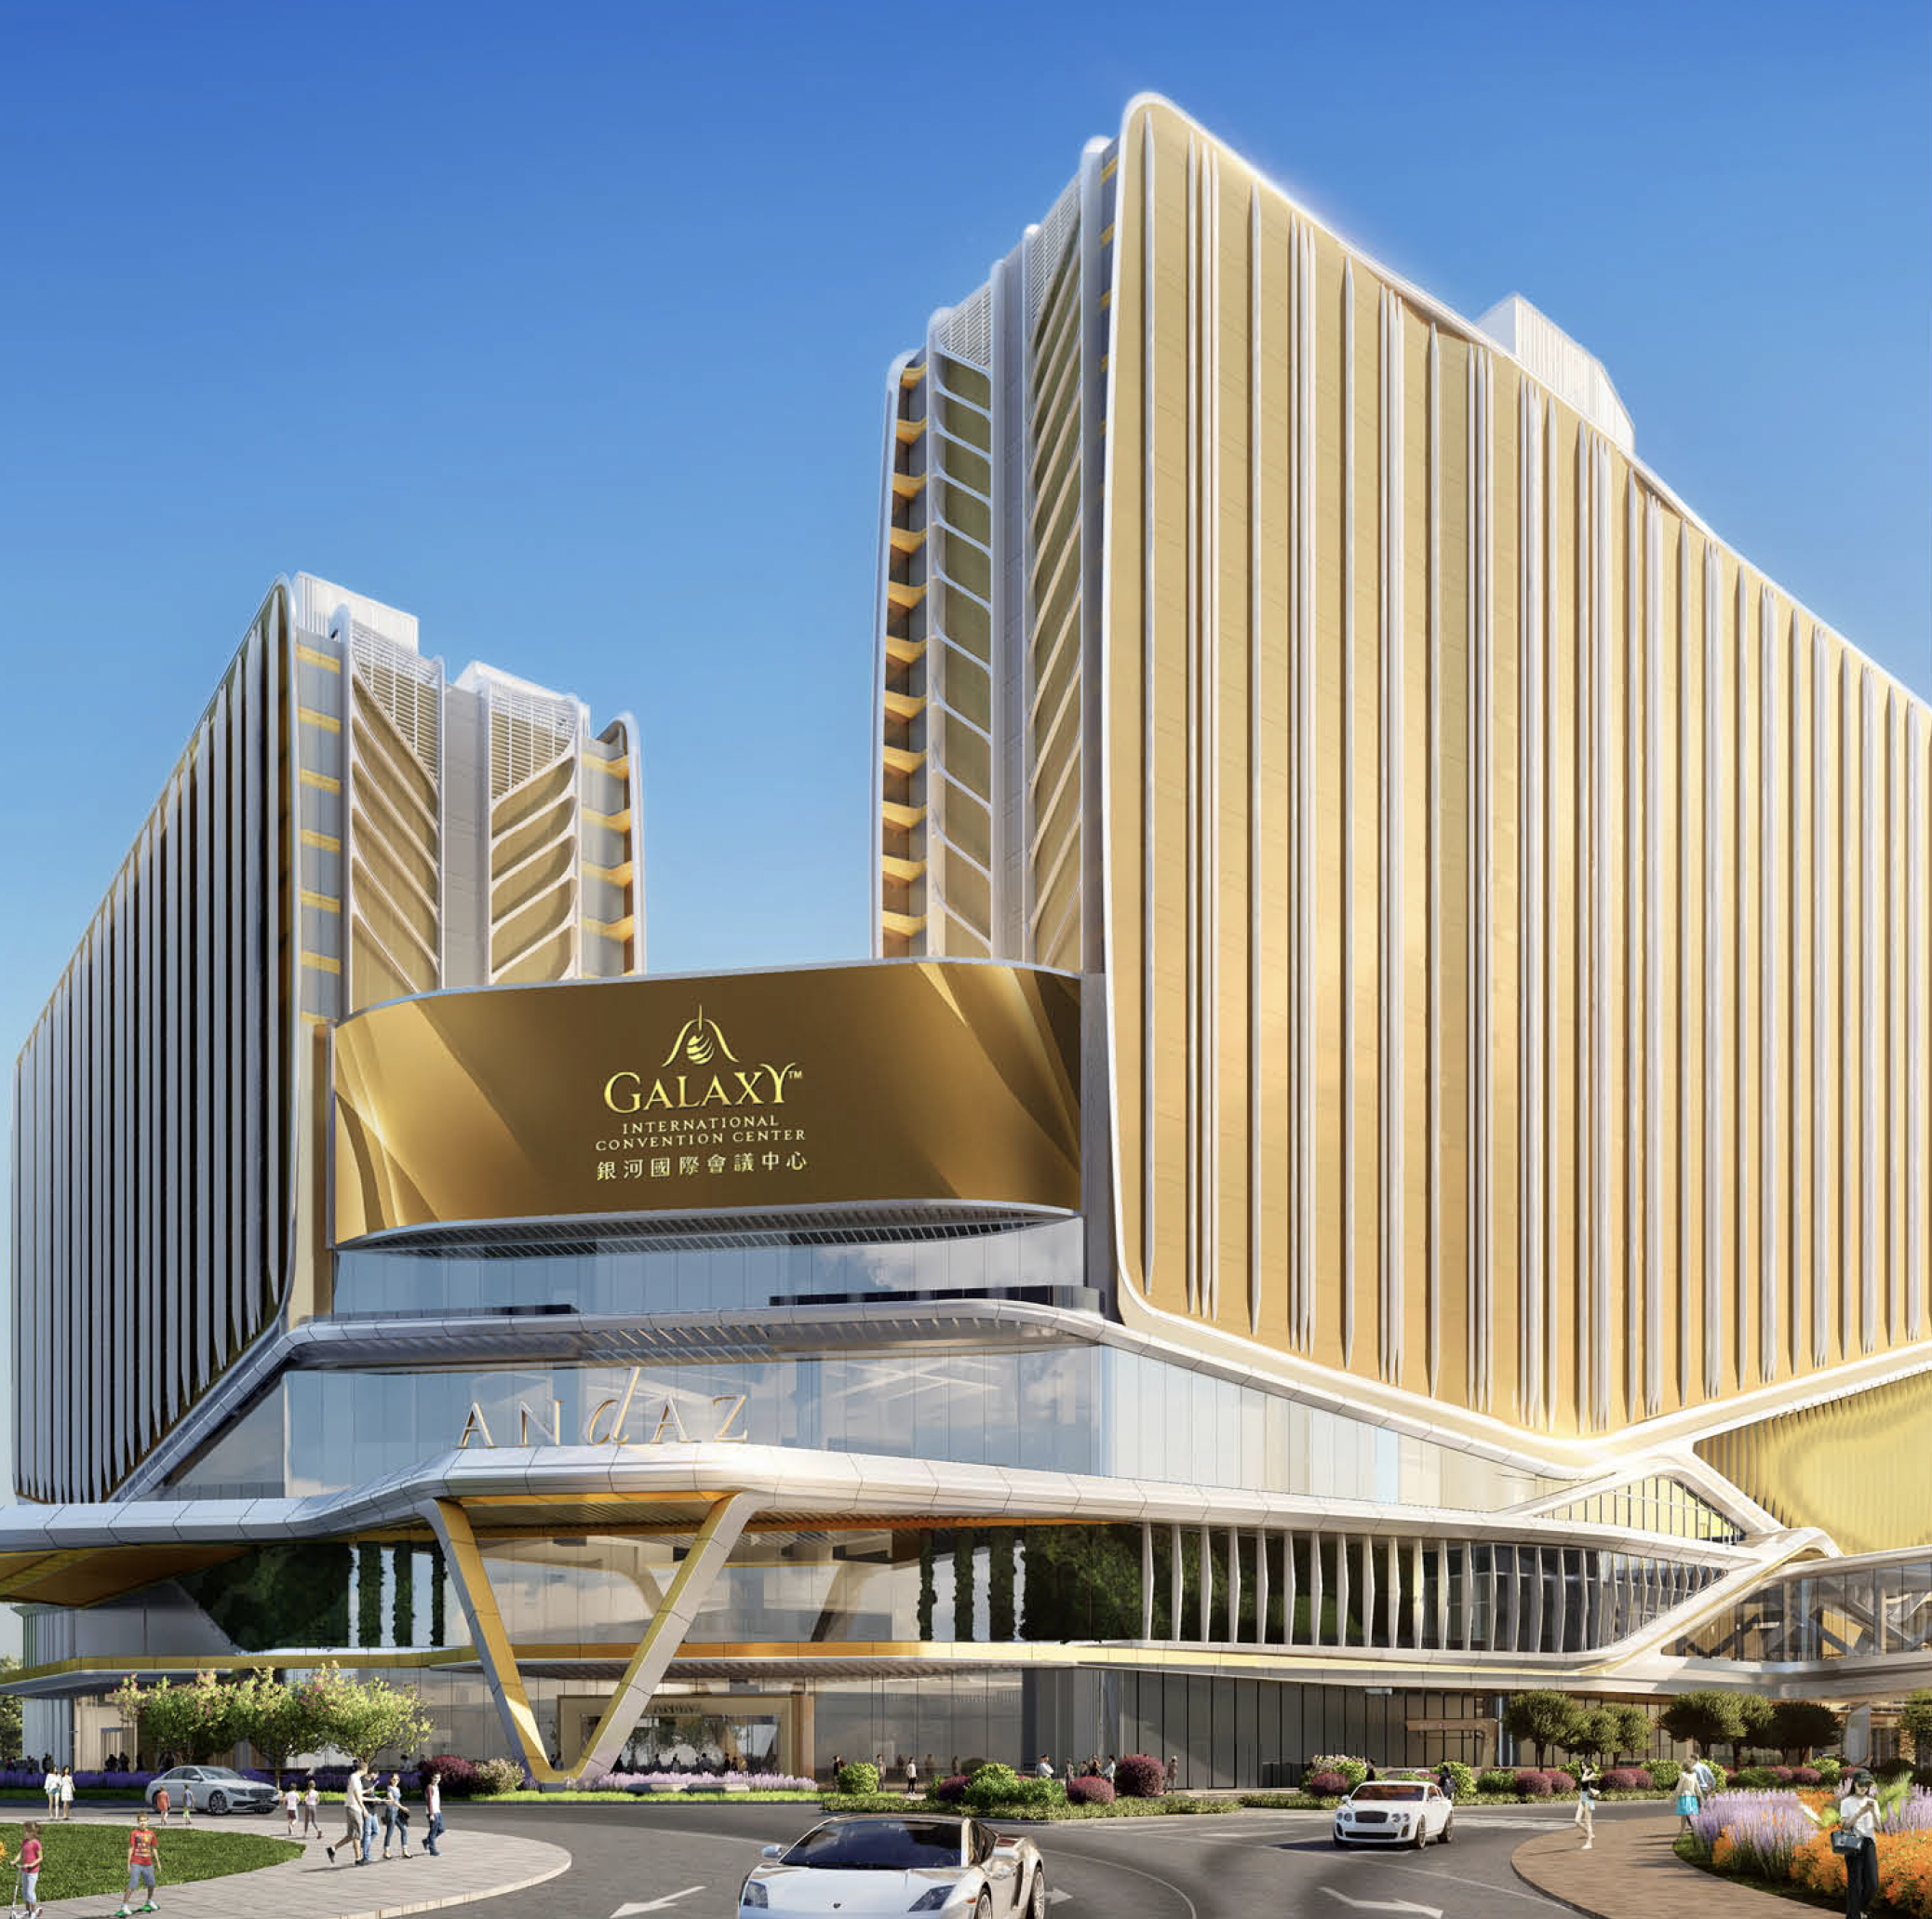 Galaxy Phase 3 Macao